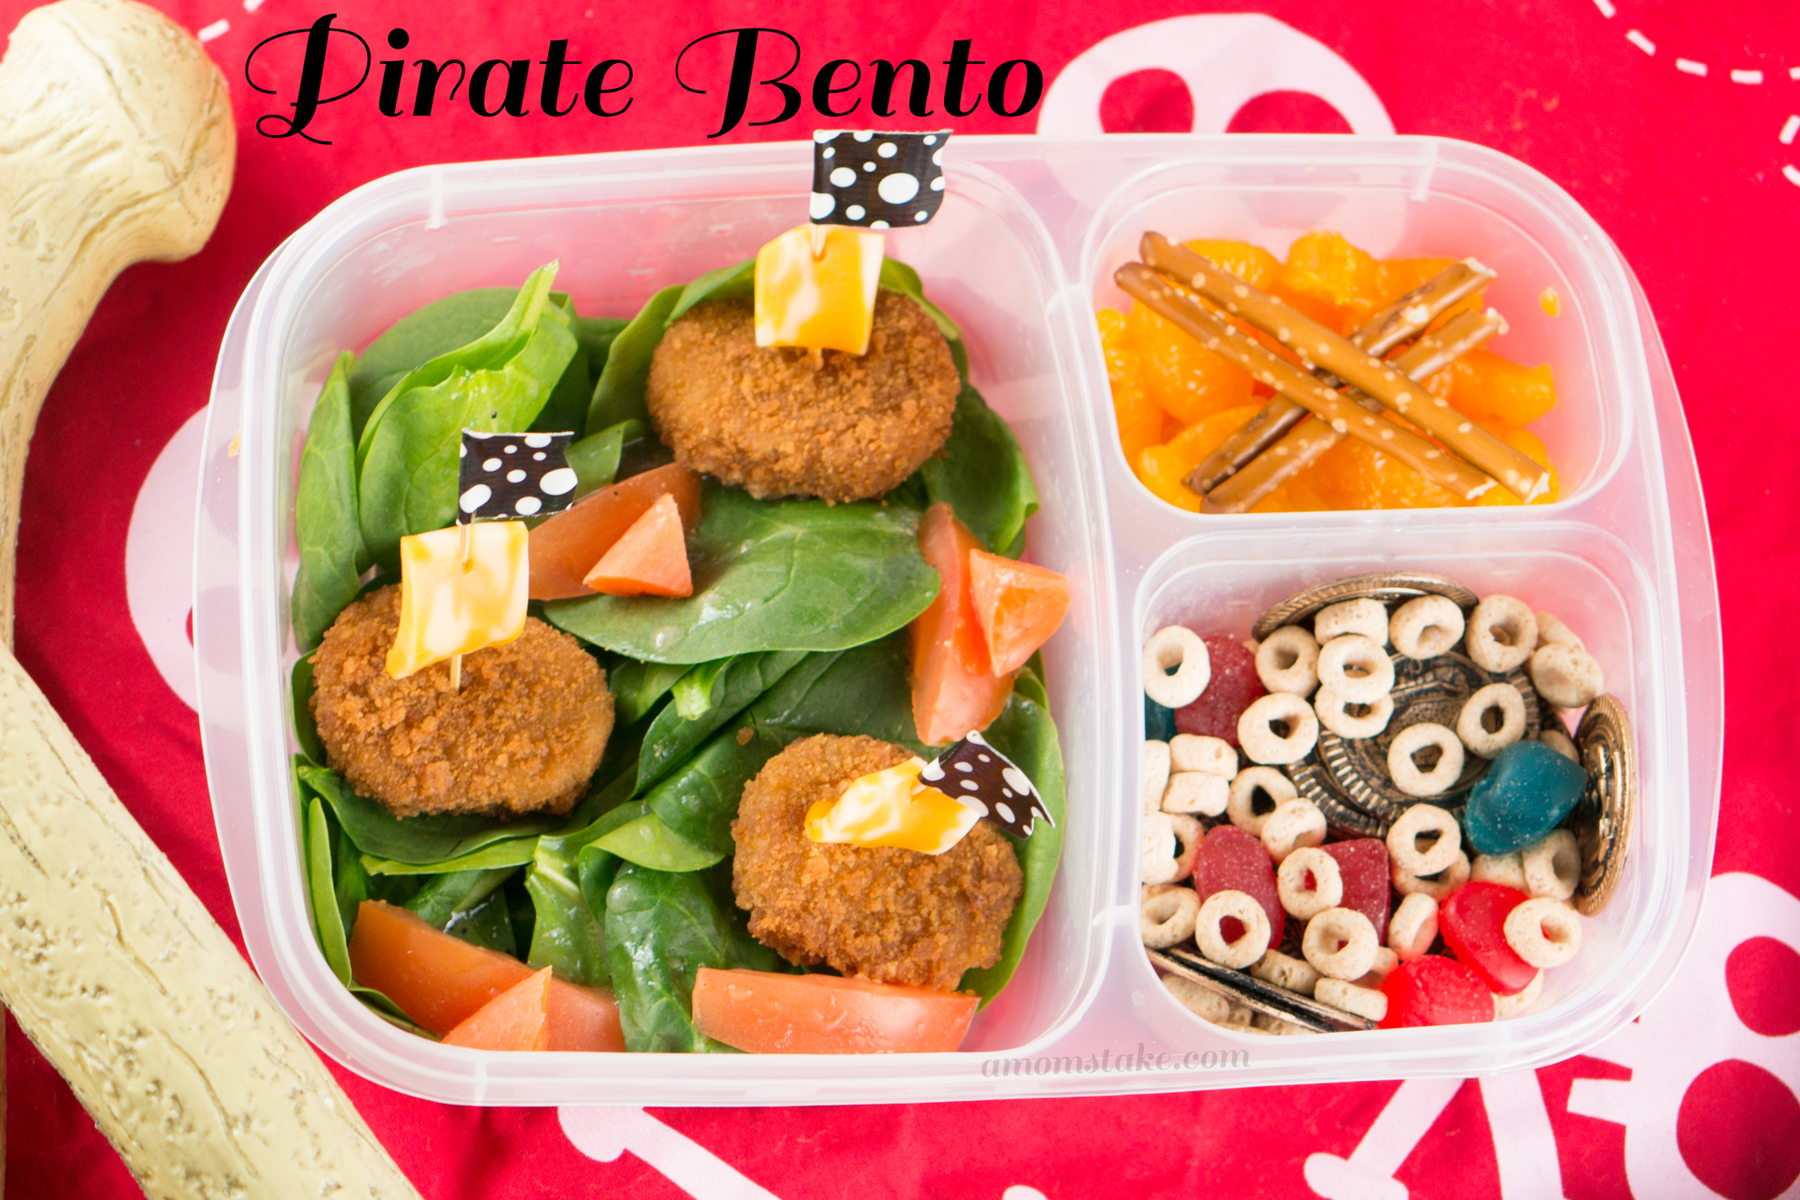 meatless lunch pirate bento lunchbox a mom 39 s take. Black Bedroom Furniture Sets. Home Design Ideas